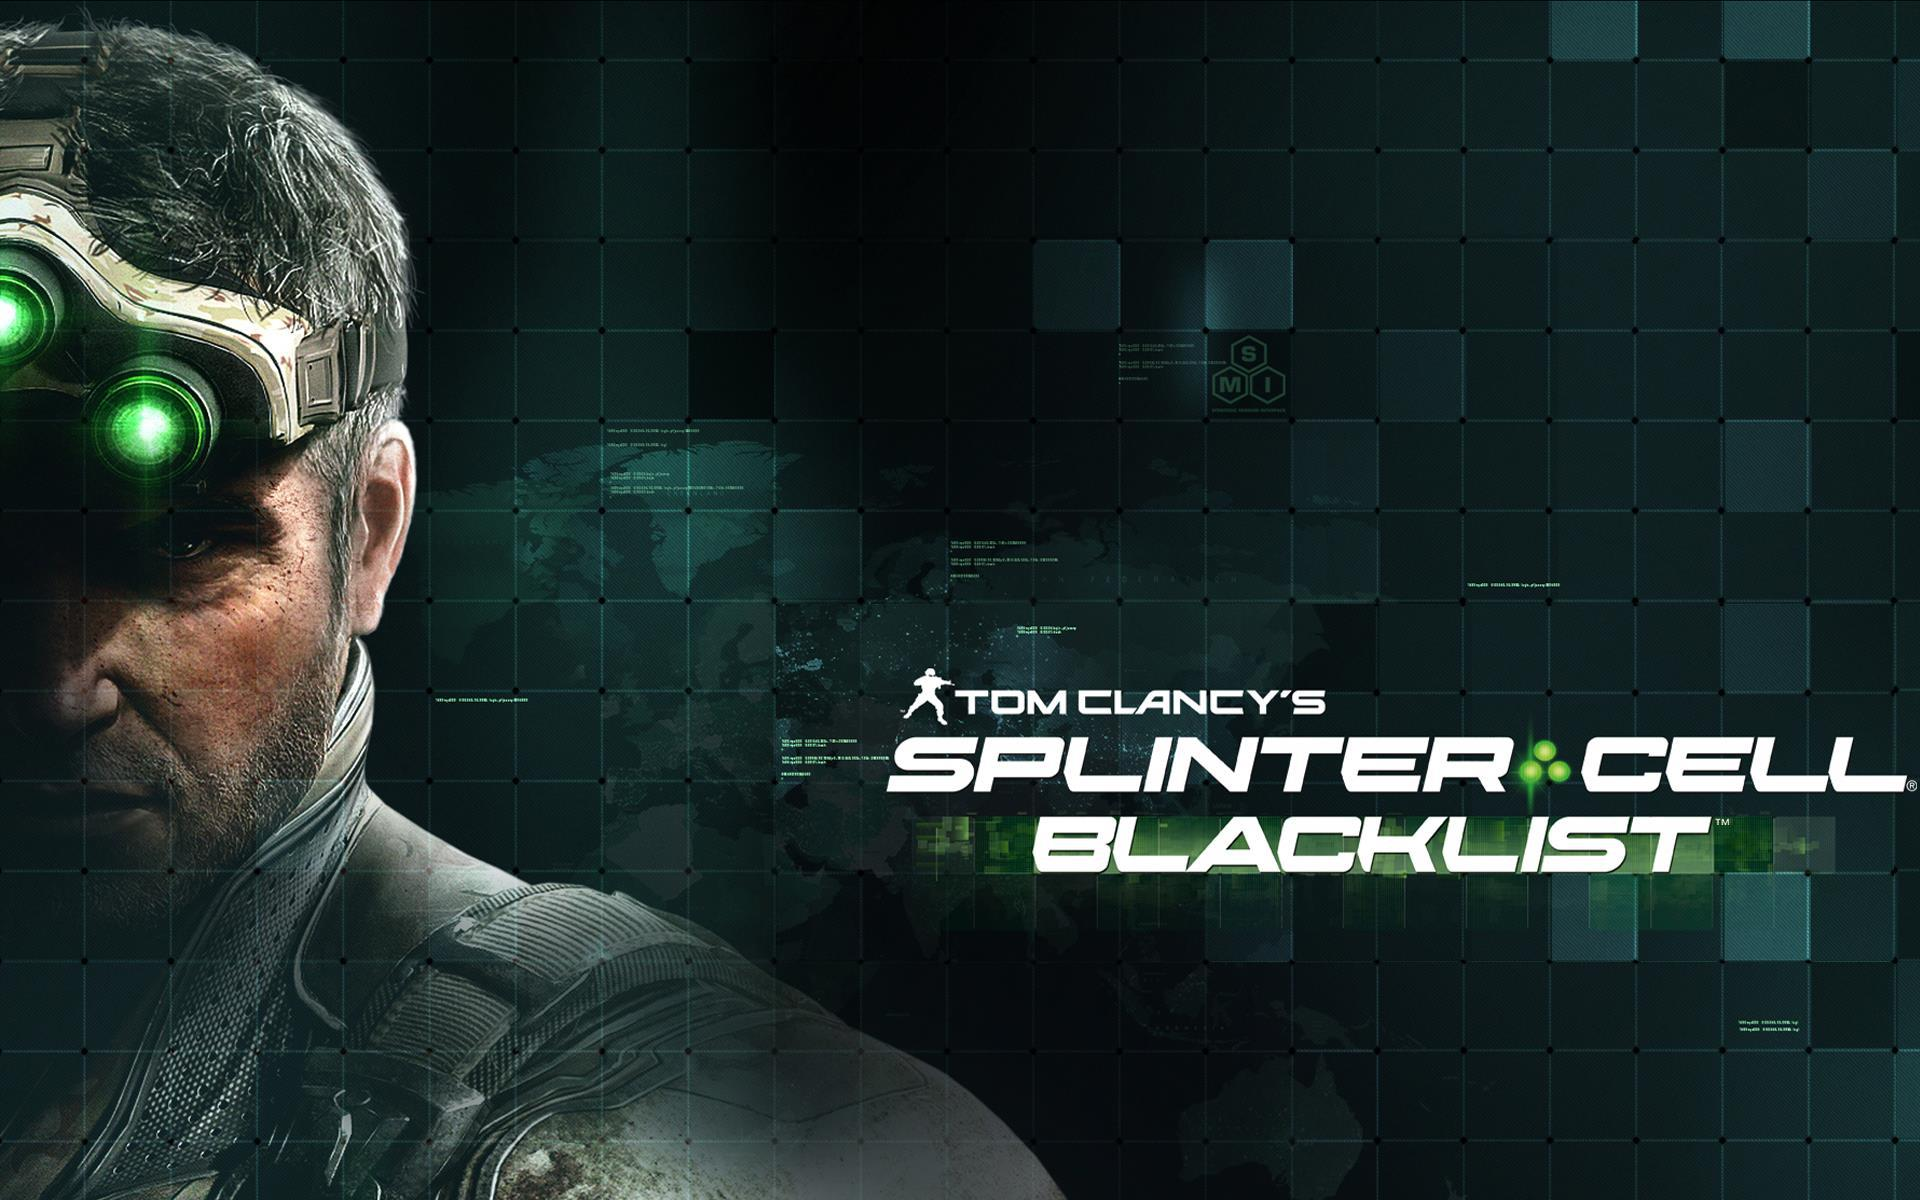 Splinter Cell Blacklist Wii U preorders go live.